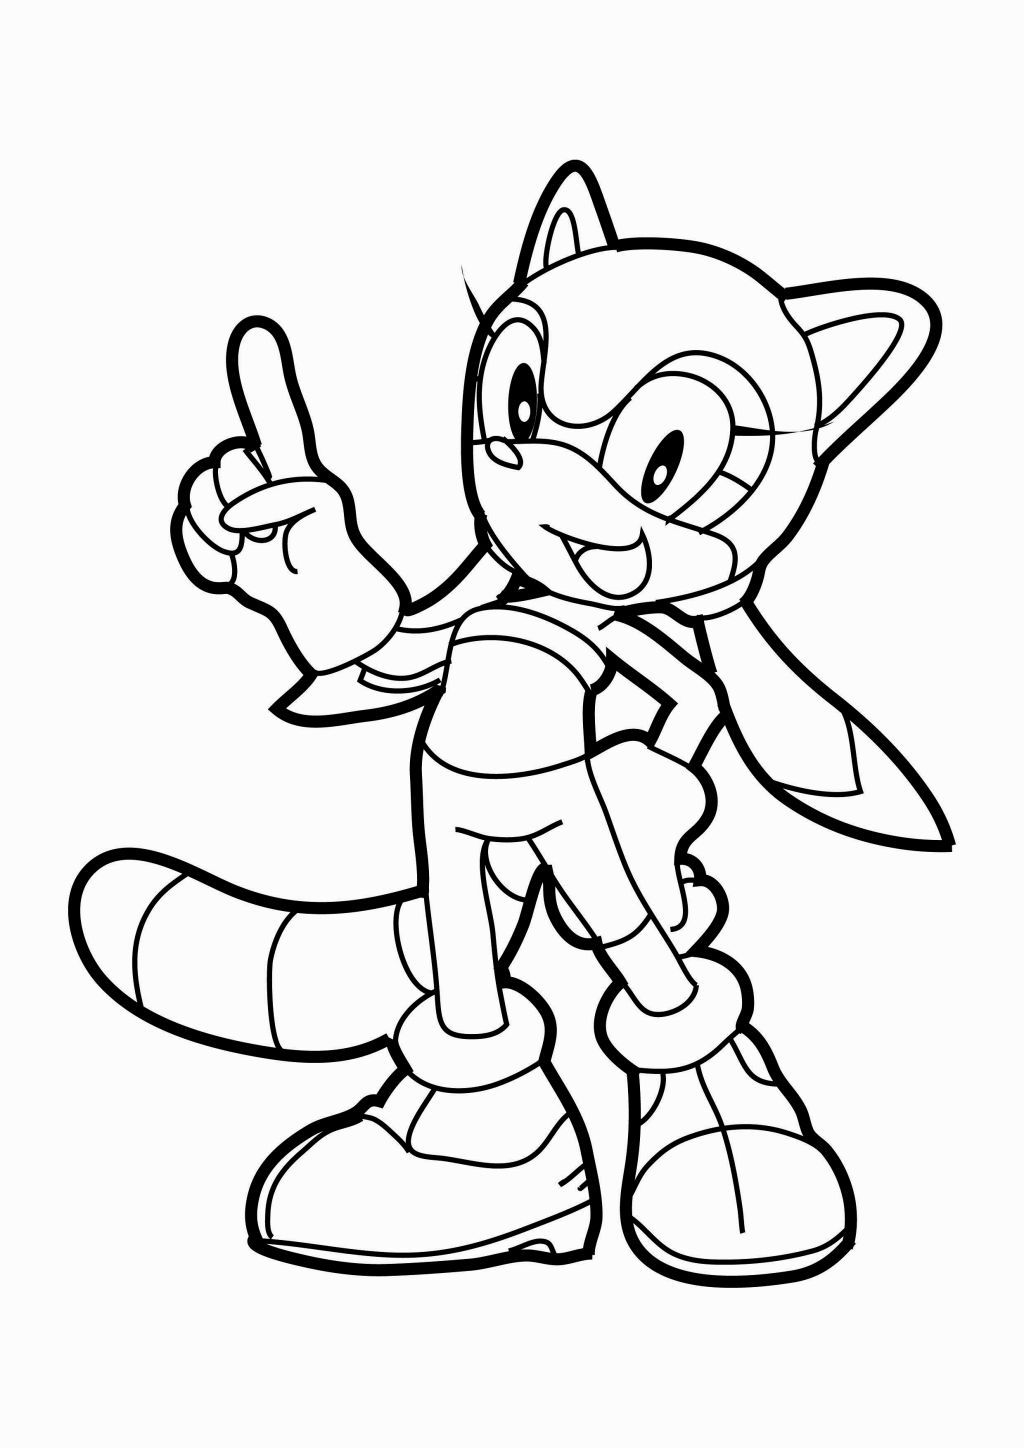 Sonic The Hedgehog Coloring | Coloring Pages | Pinterest